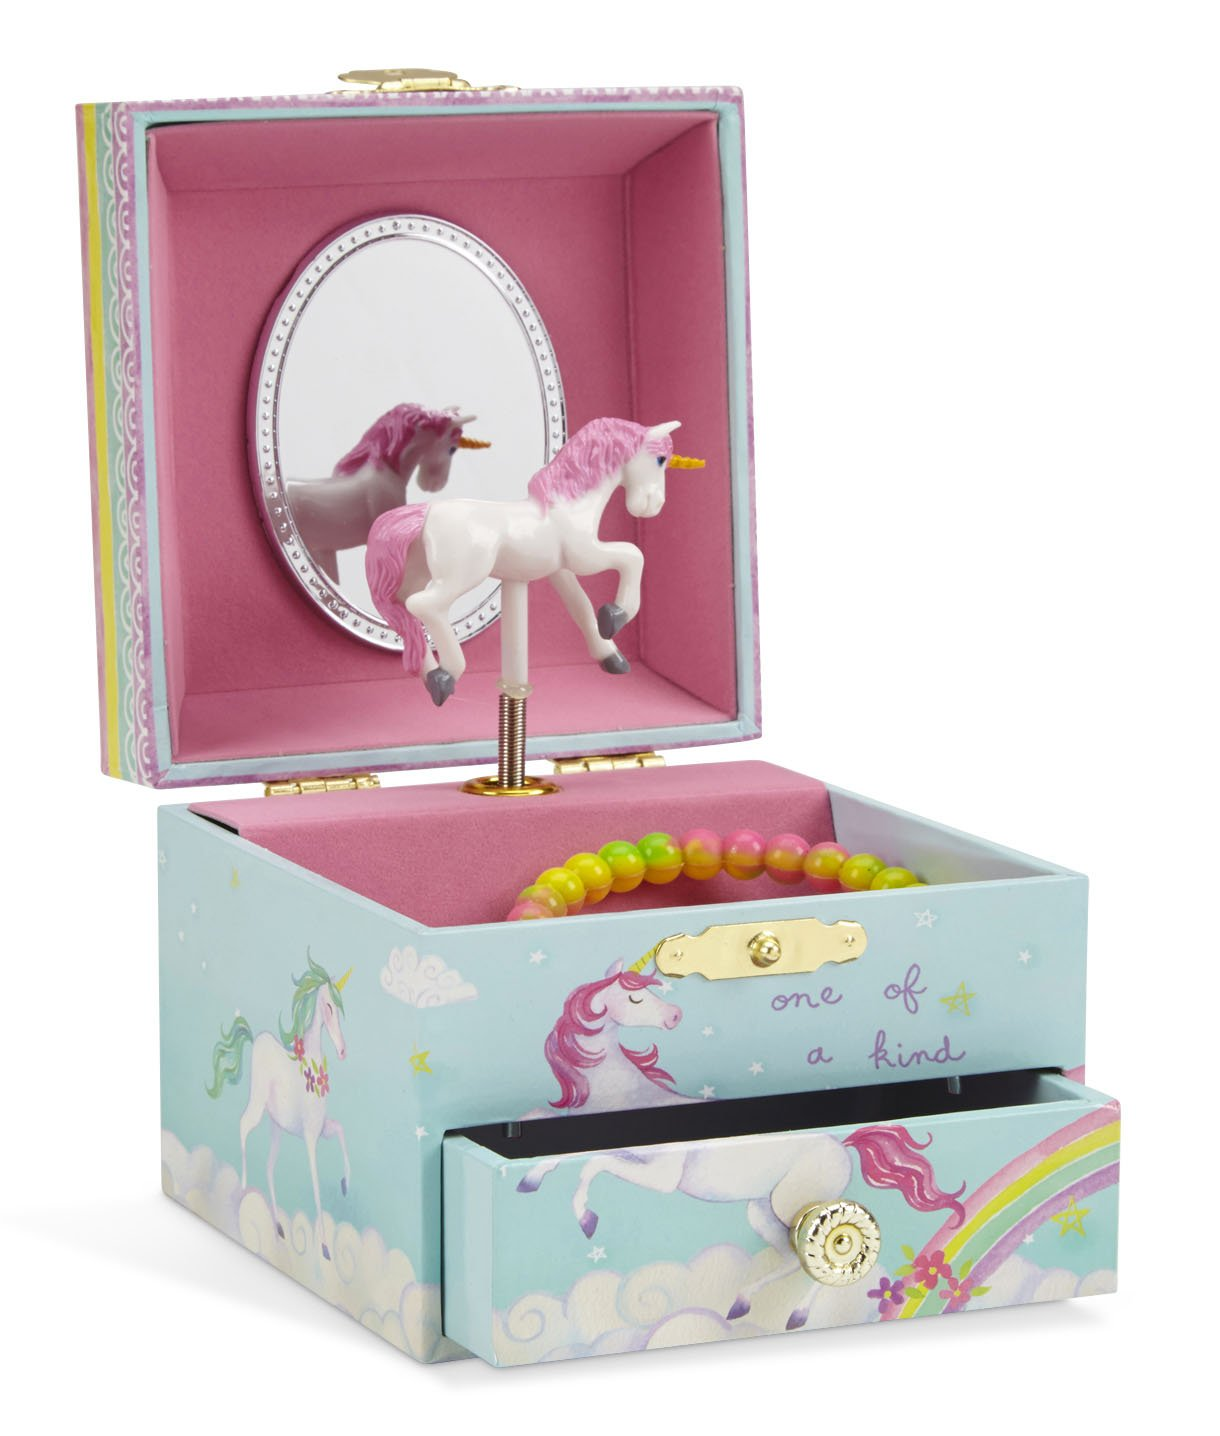 JewelKeeper Musical Ballerina Jewelry Box, Unicorn Rainbow Design with Pullout Drawer, Somewhere Over the Rainbow Tune